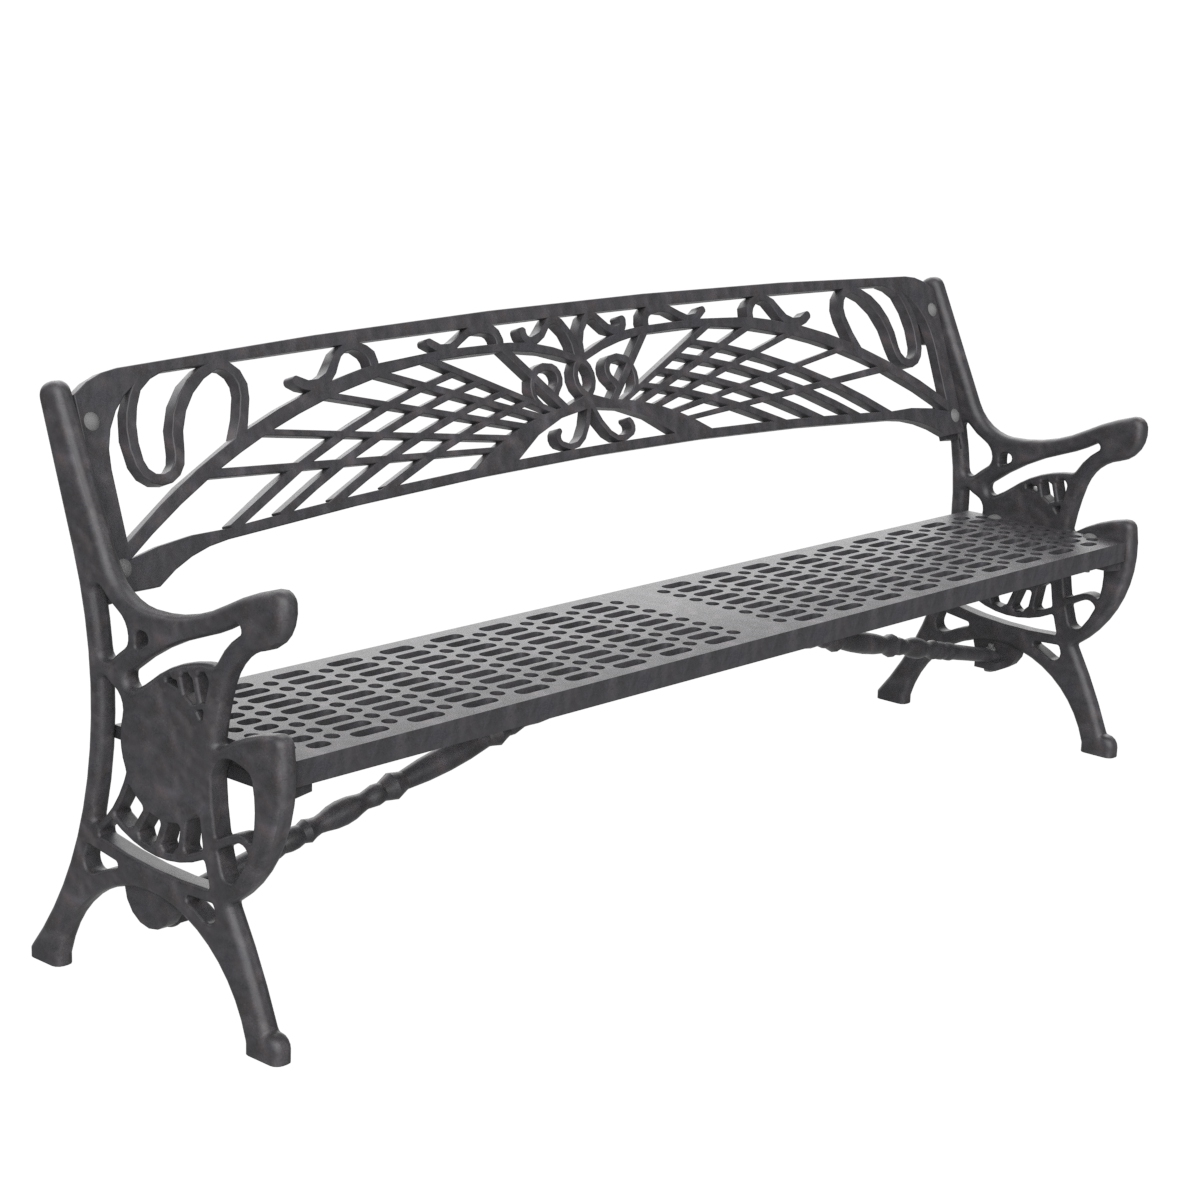 casting Bench Urban furniture for siting down in parks and gardens